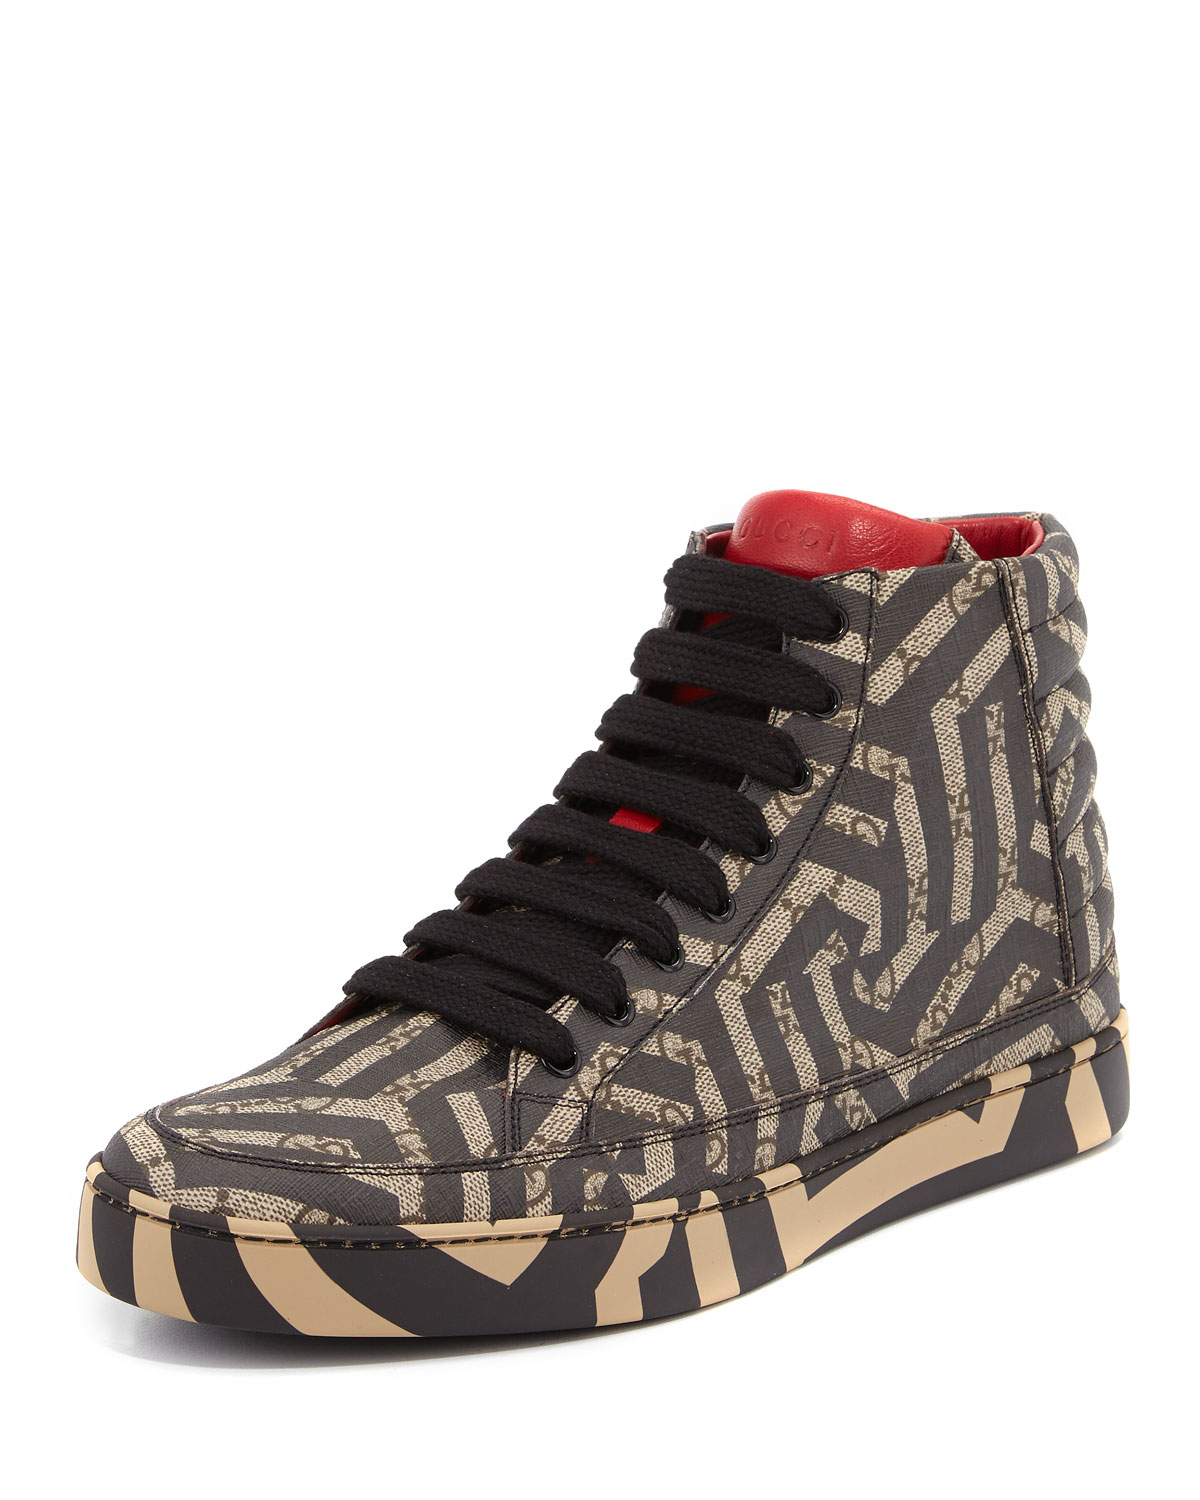 gucci gg caleido canvas high top sneaker in brown lyst. Black Bedroom Furniture Sets. Home Design Ideas